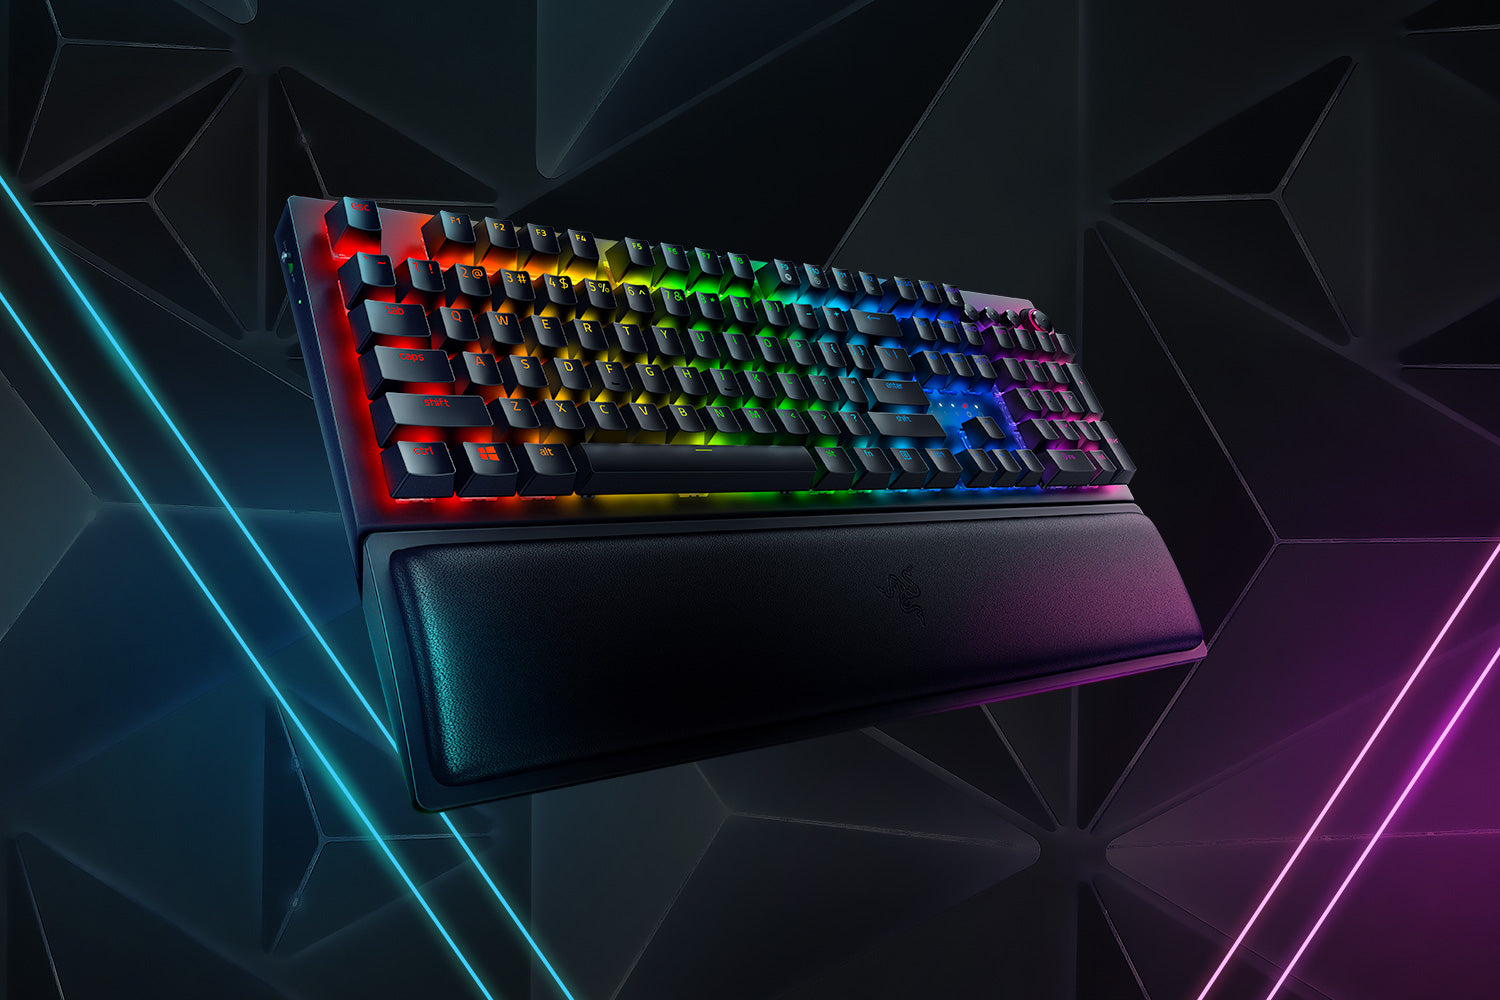 Razer V3 Pro Gaming Keyboard - Best For Gaming